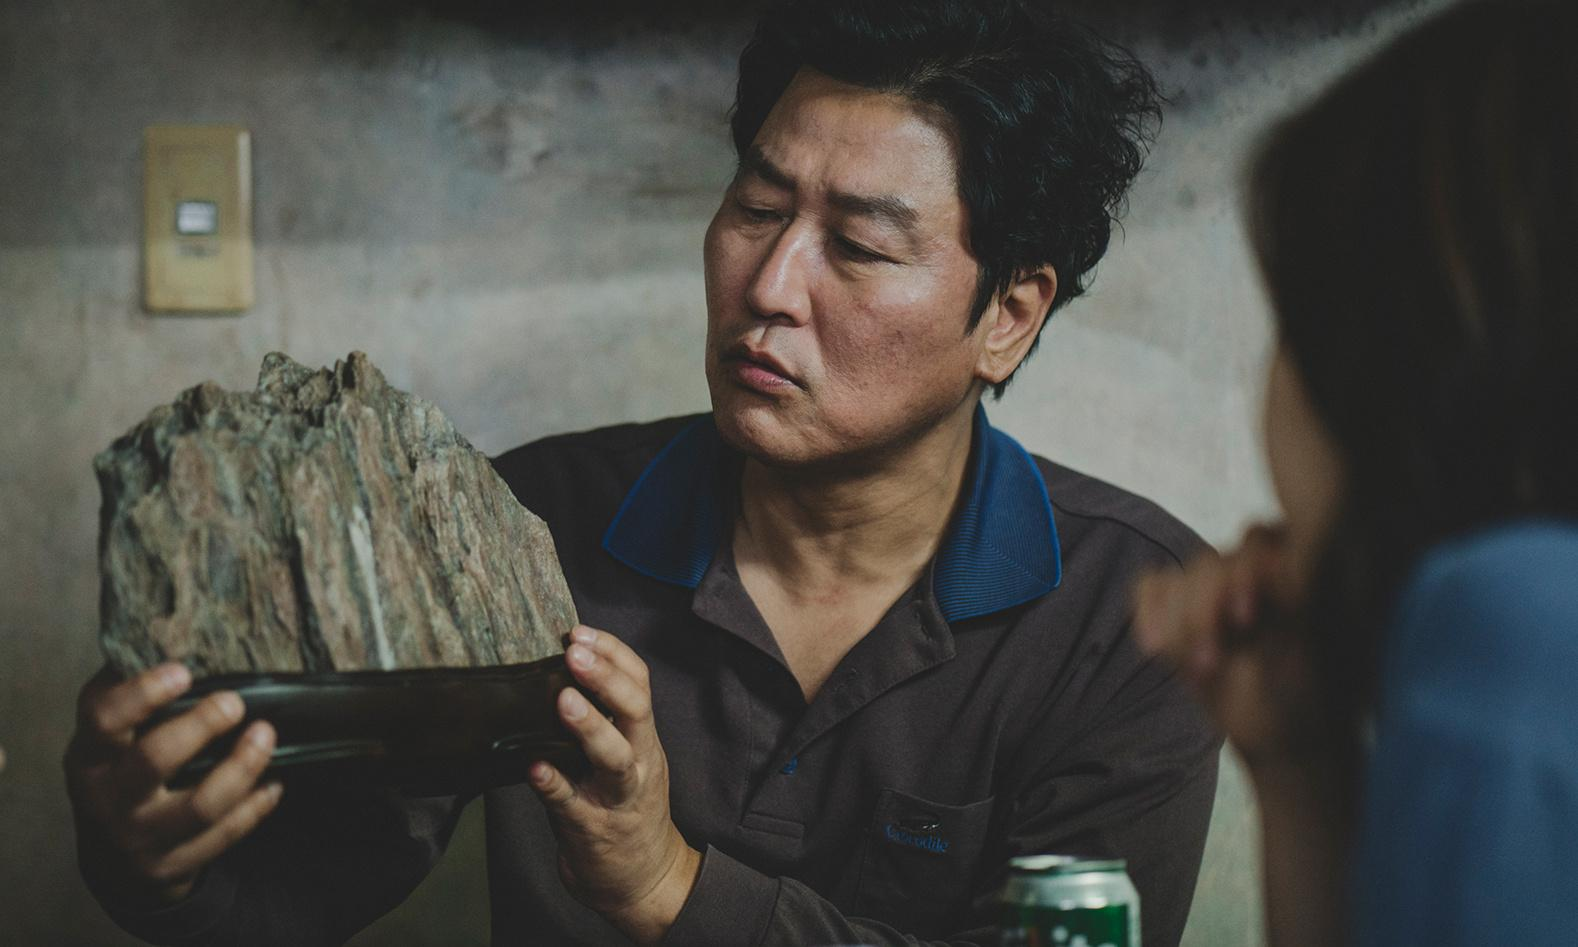 Built on rock: the geology at the heart of Oscars sensation Parasite